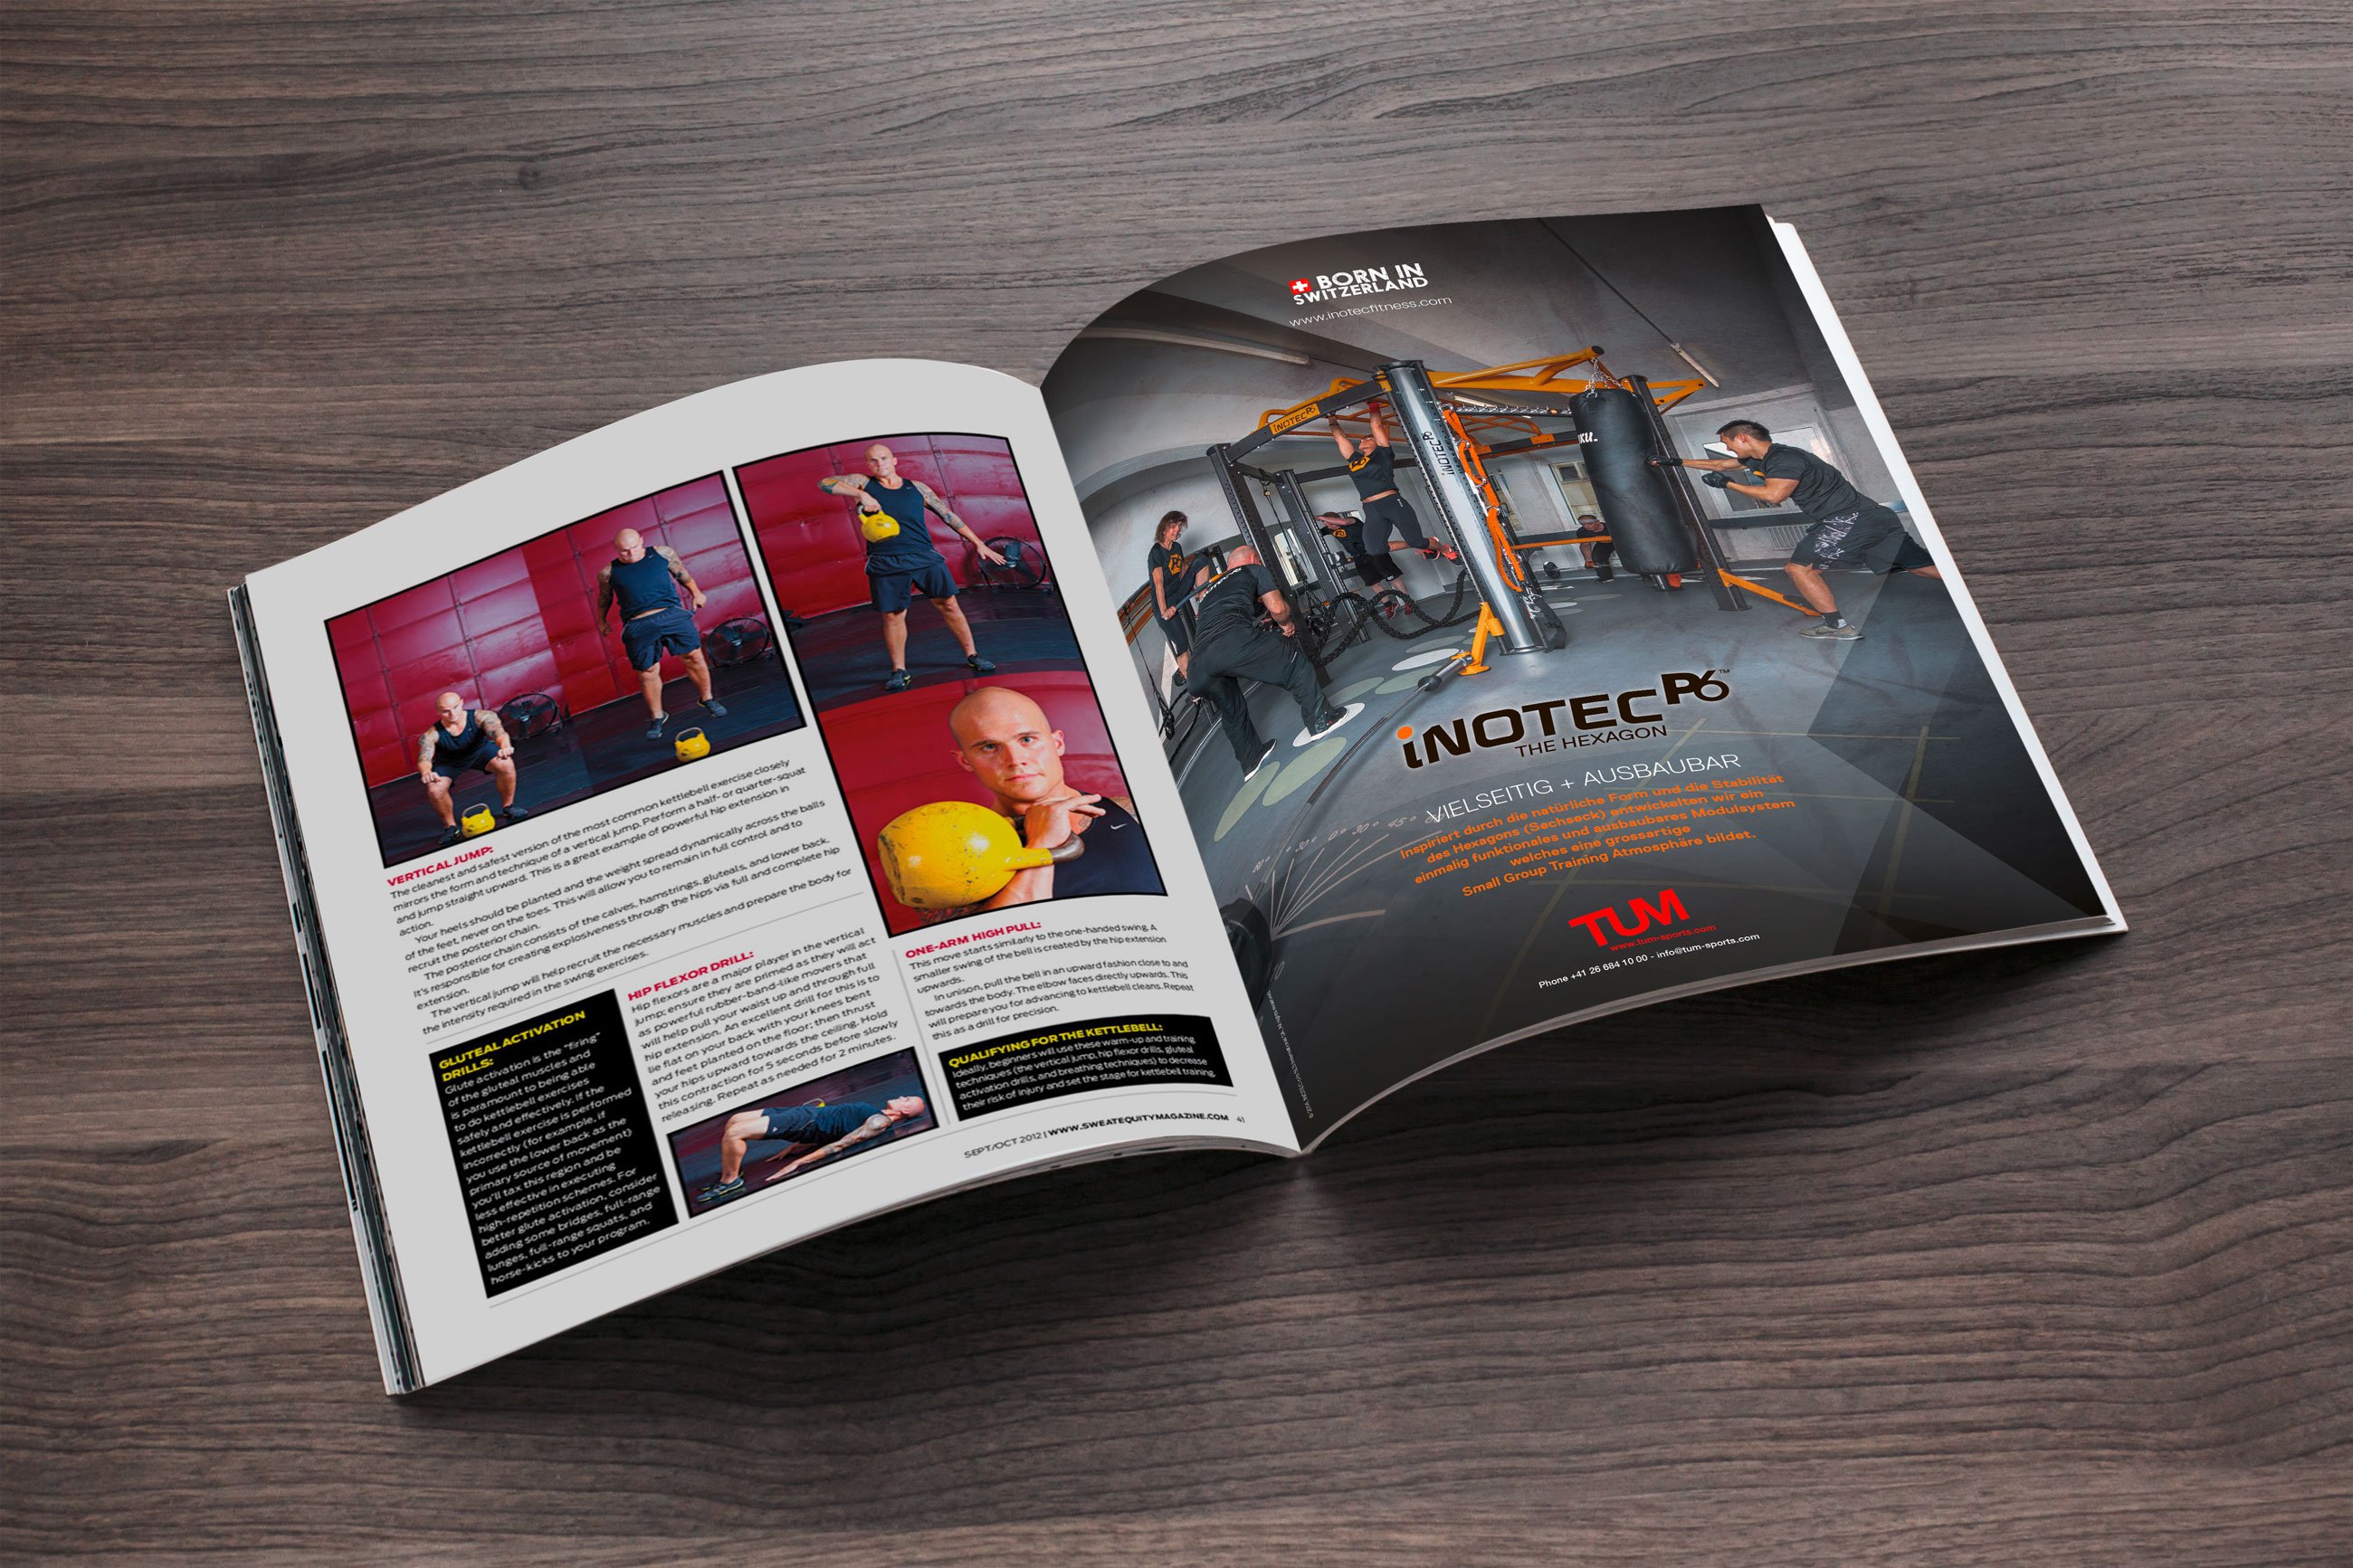 Frank R - campagne annonces Inotec Fitness